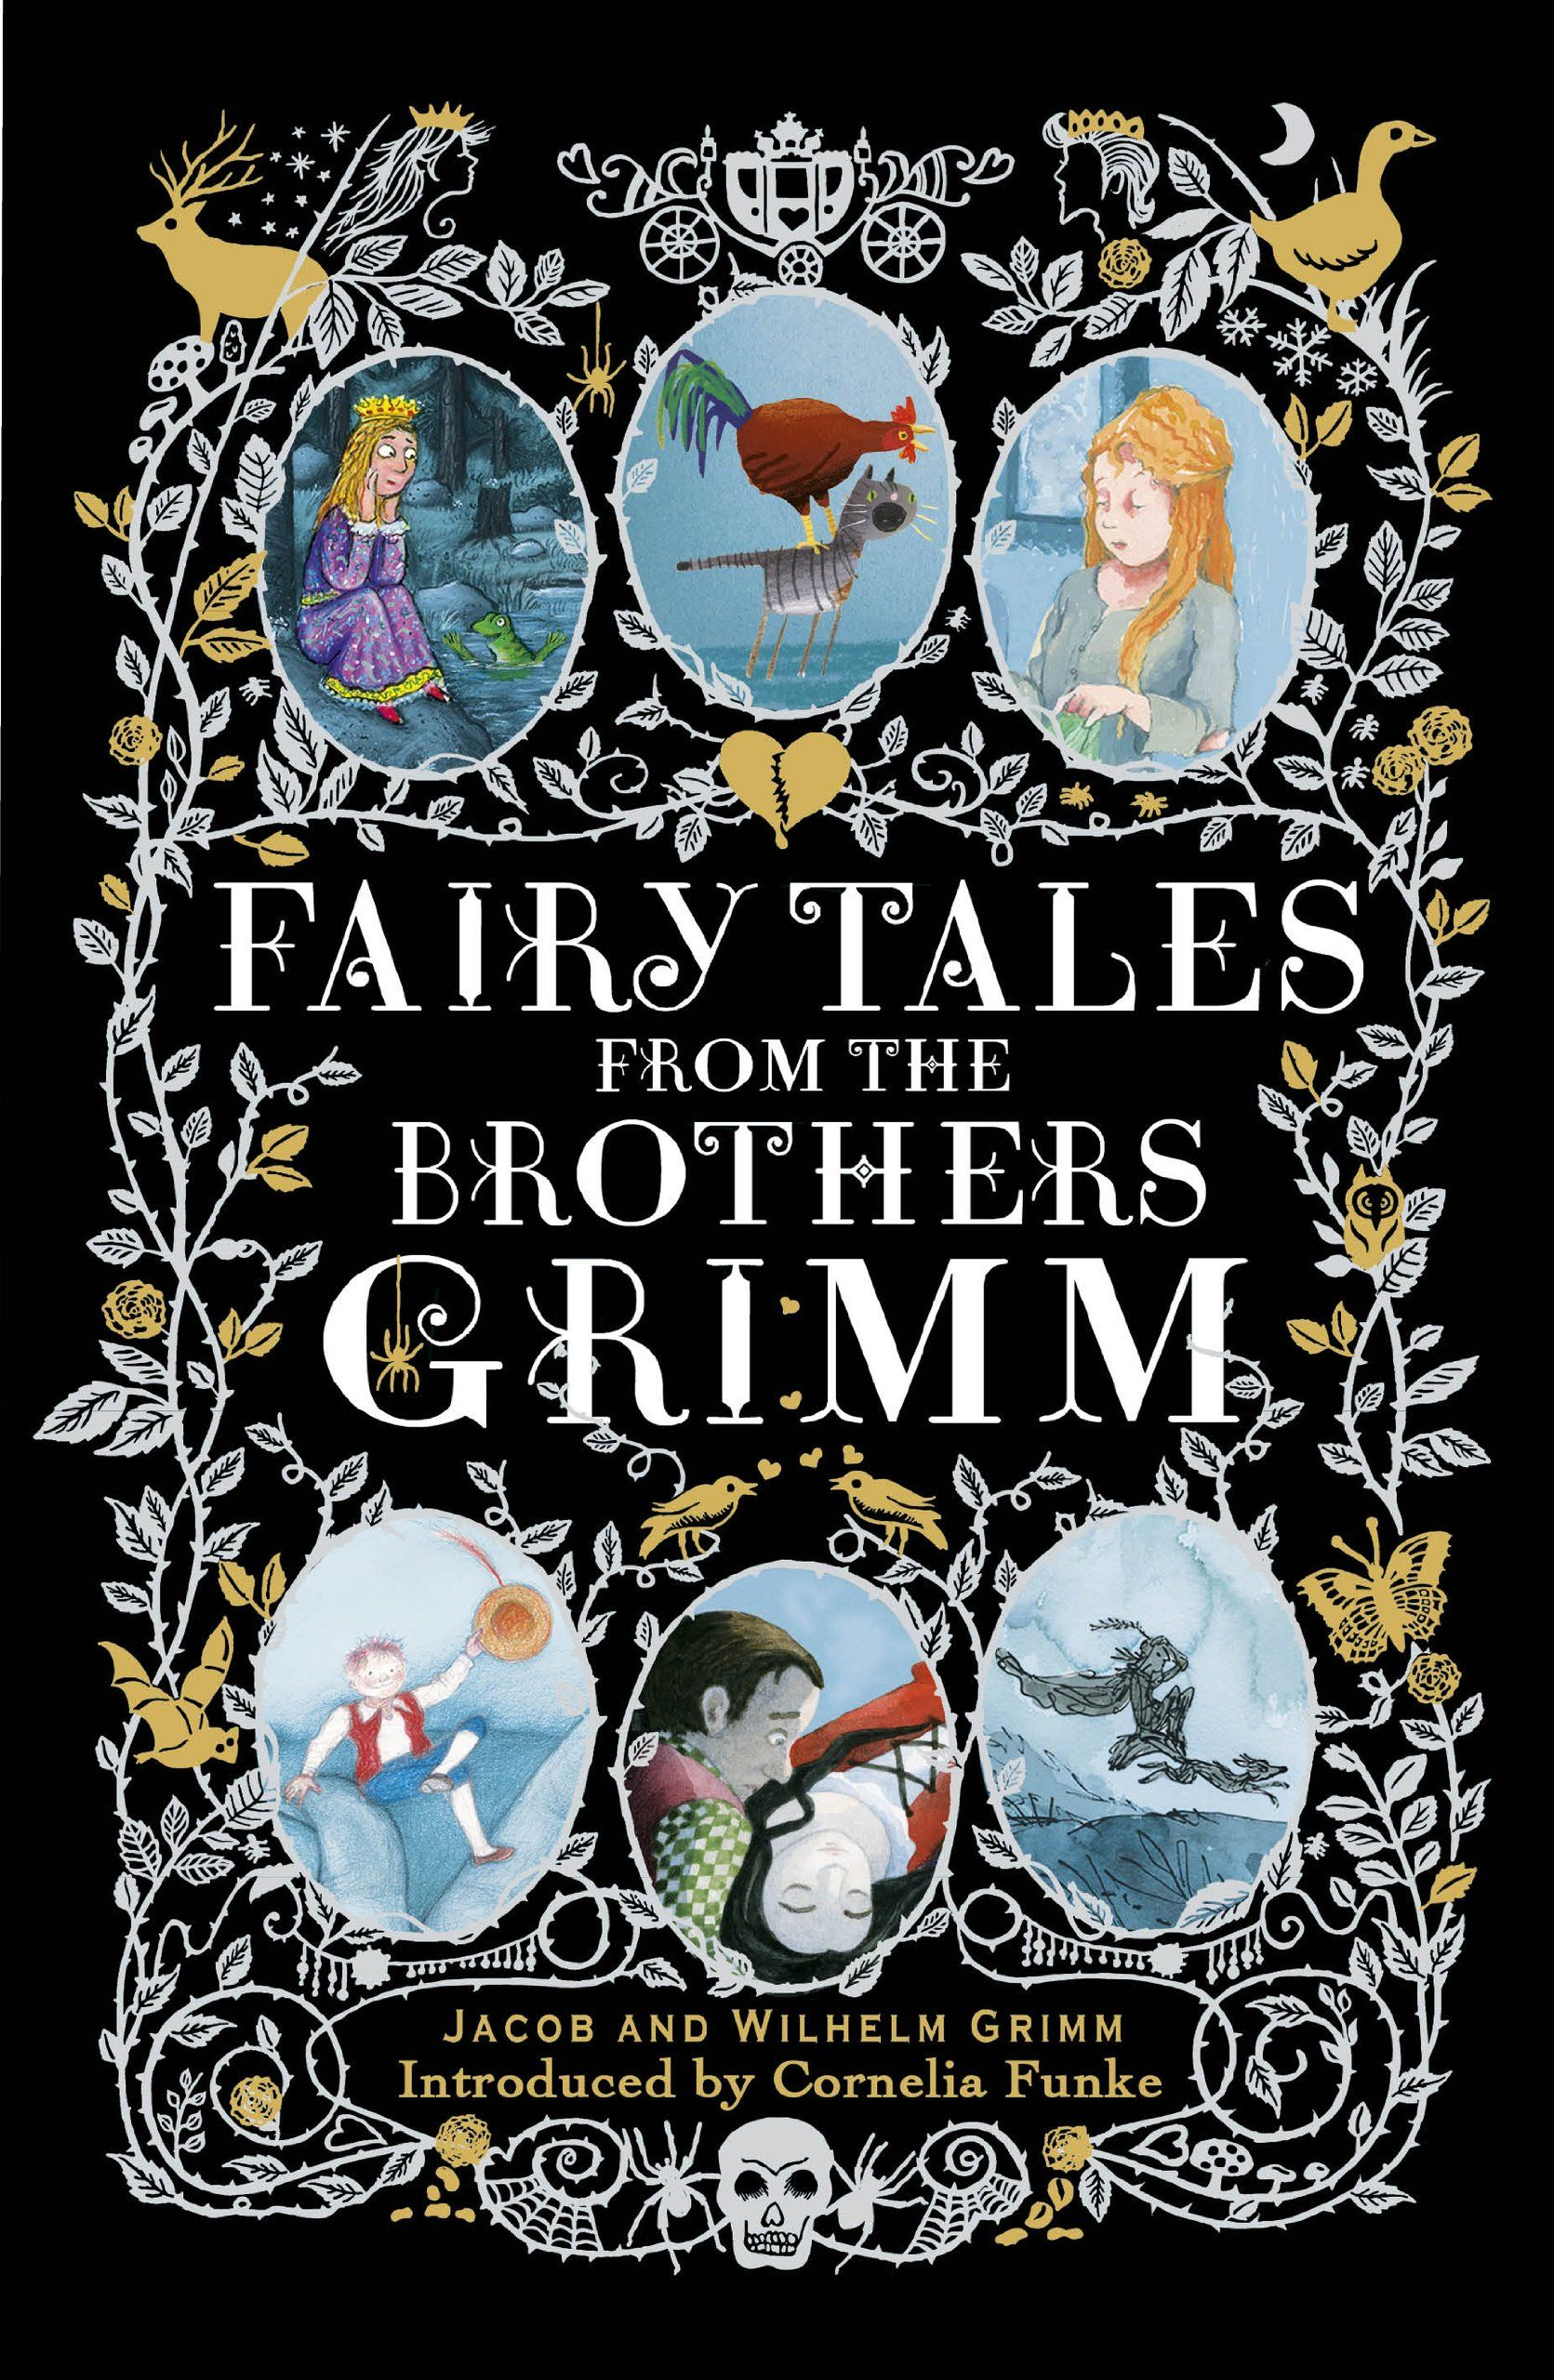 an analysis of the grimm brothers fairy tales Fairy tales by the grimm brothers this web edition of tales from the grimm brothers' kinder- und hausmärchen features german and english versions of the fairy tales.